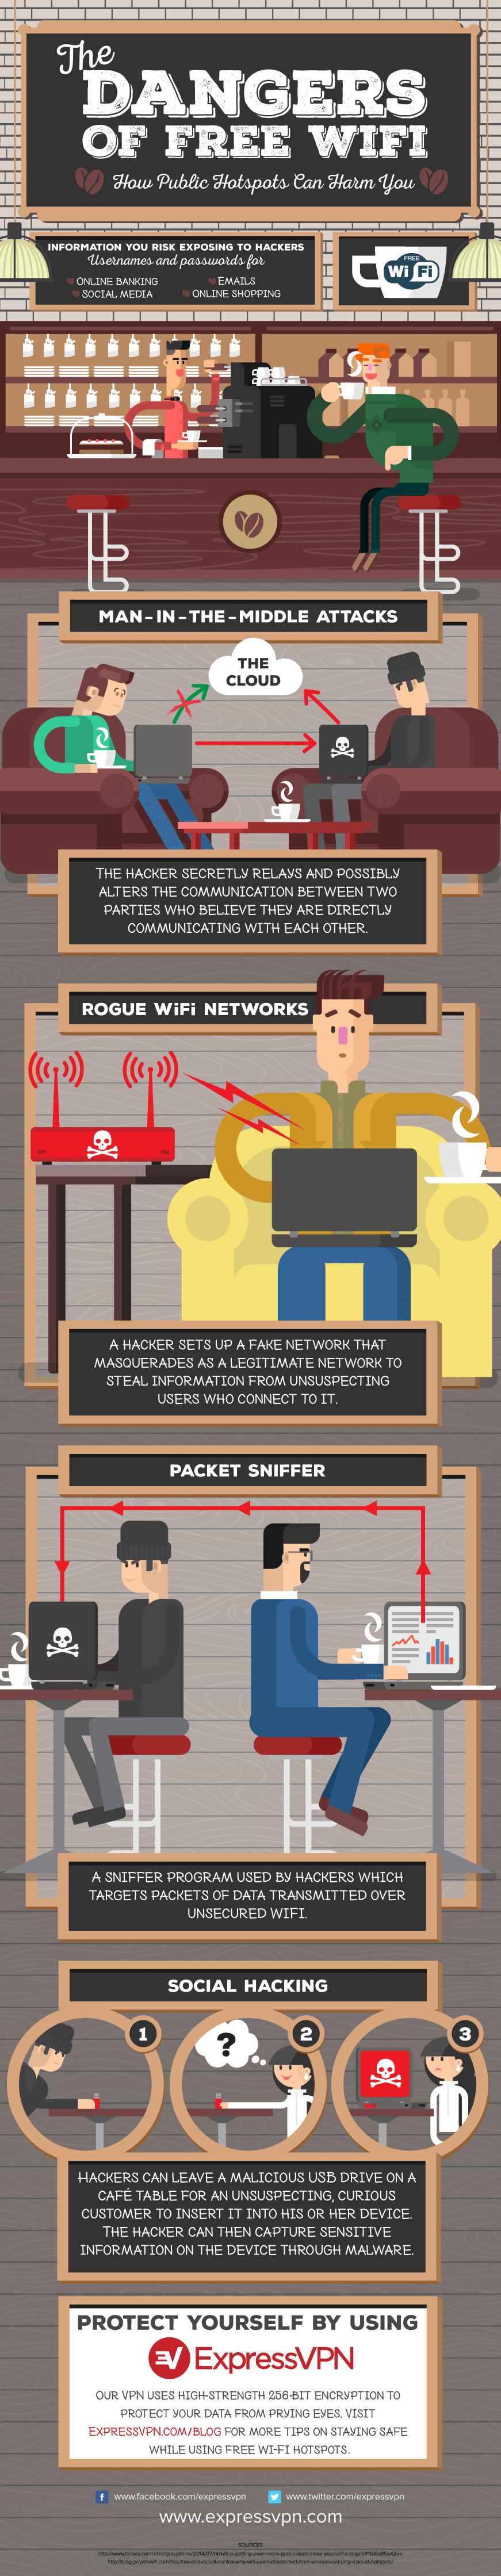 dangers-of-free-wifi-infographic